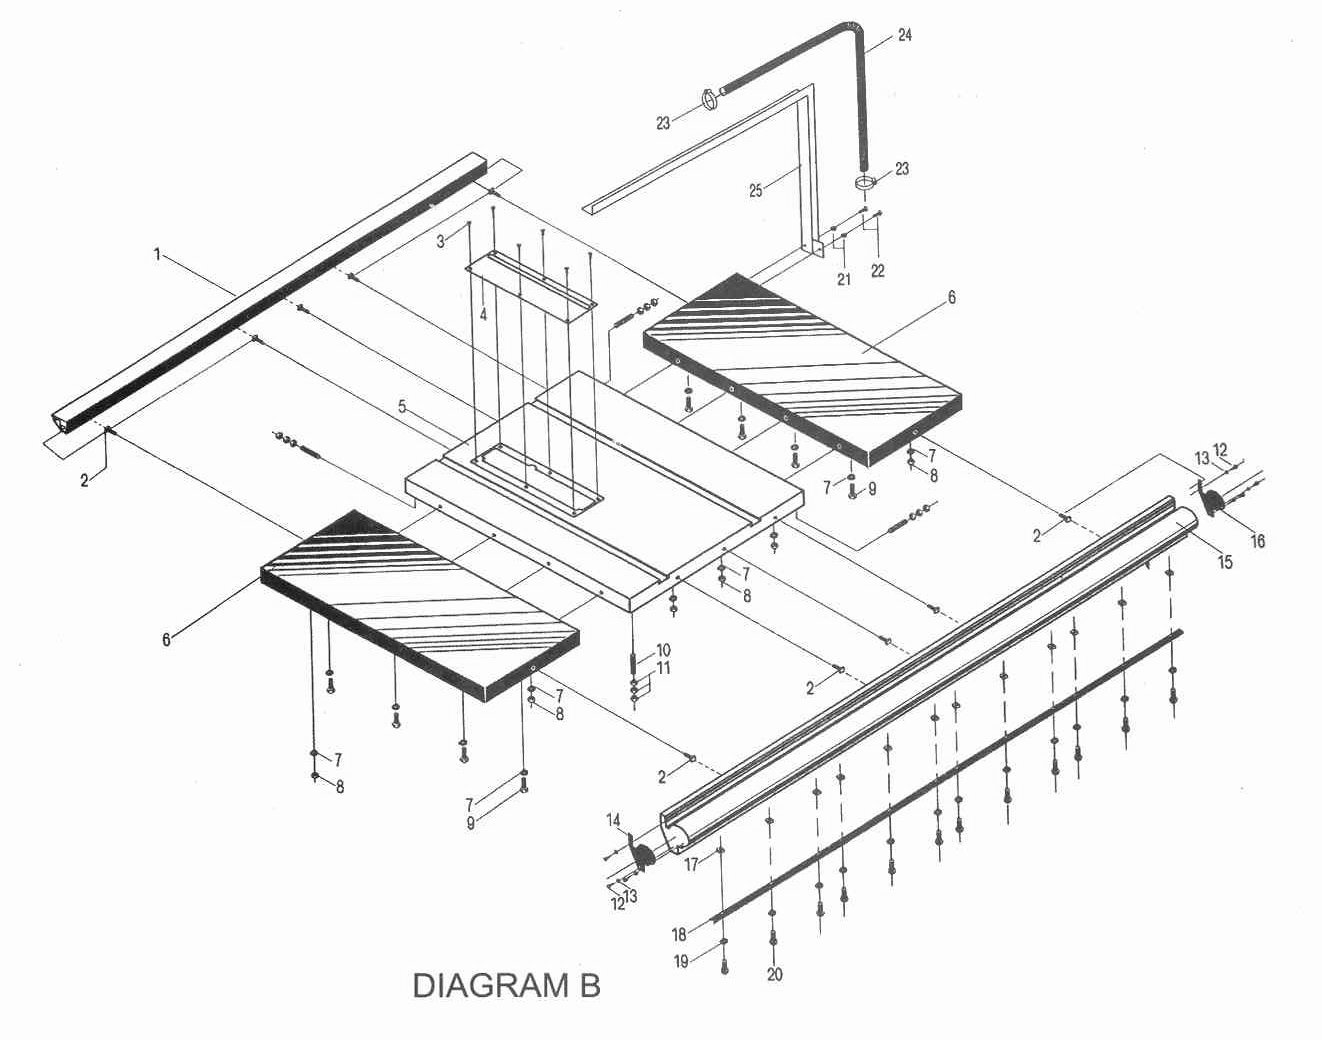 Sip 10 Heavy Duty Table Saw Diagram B